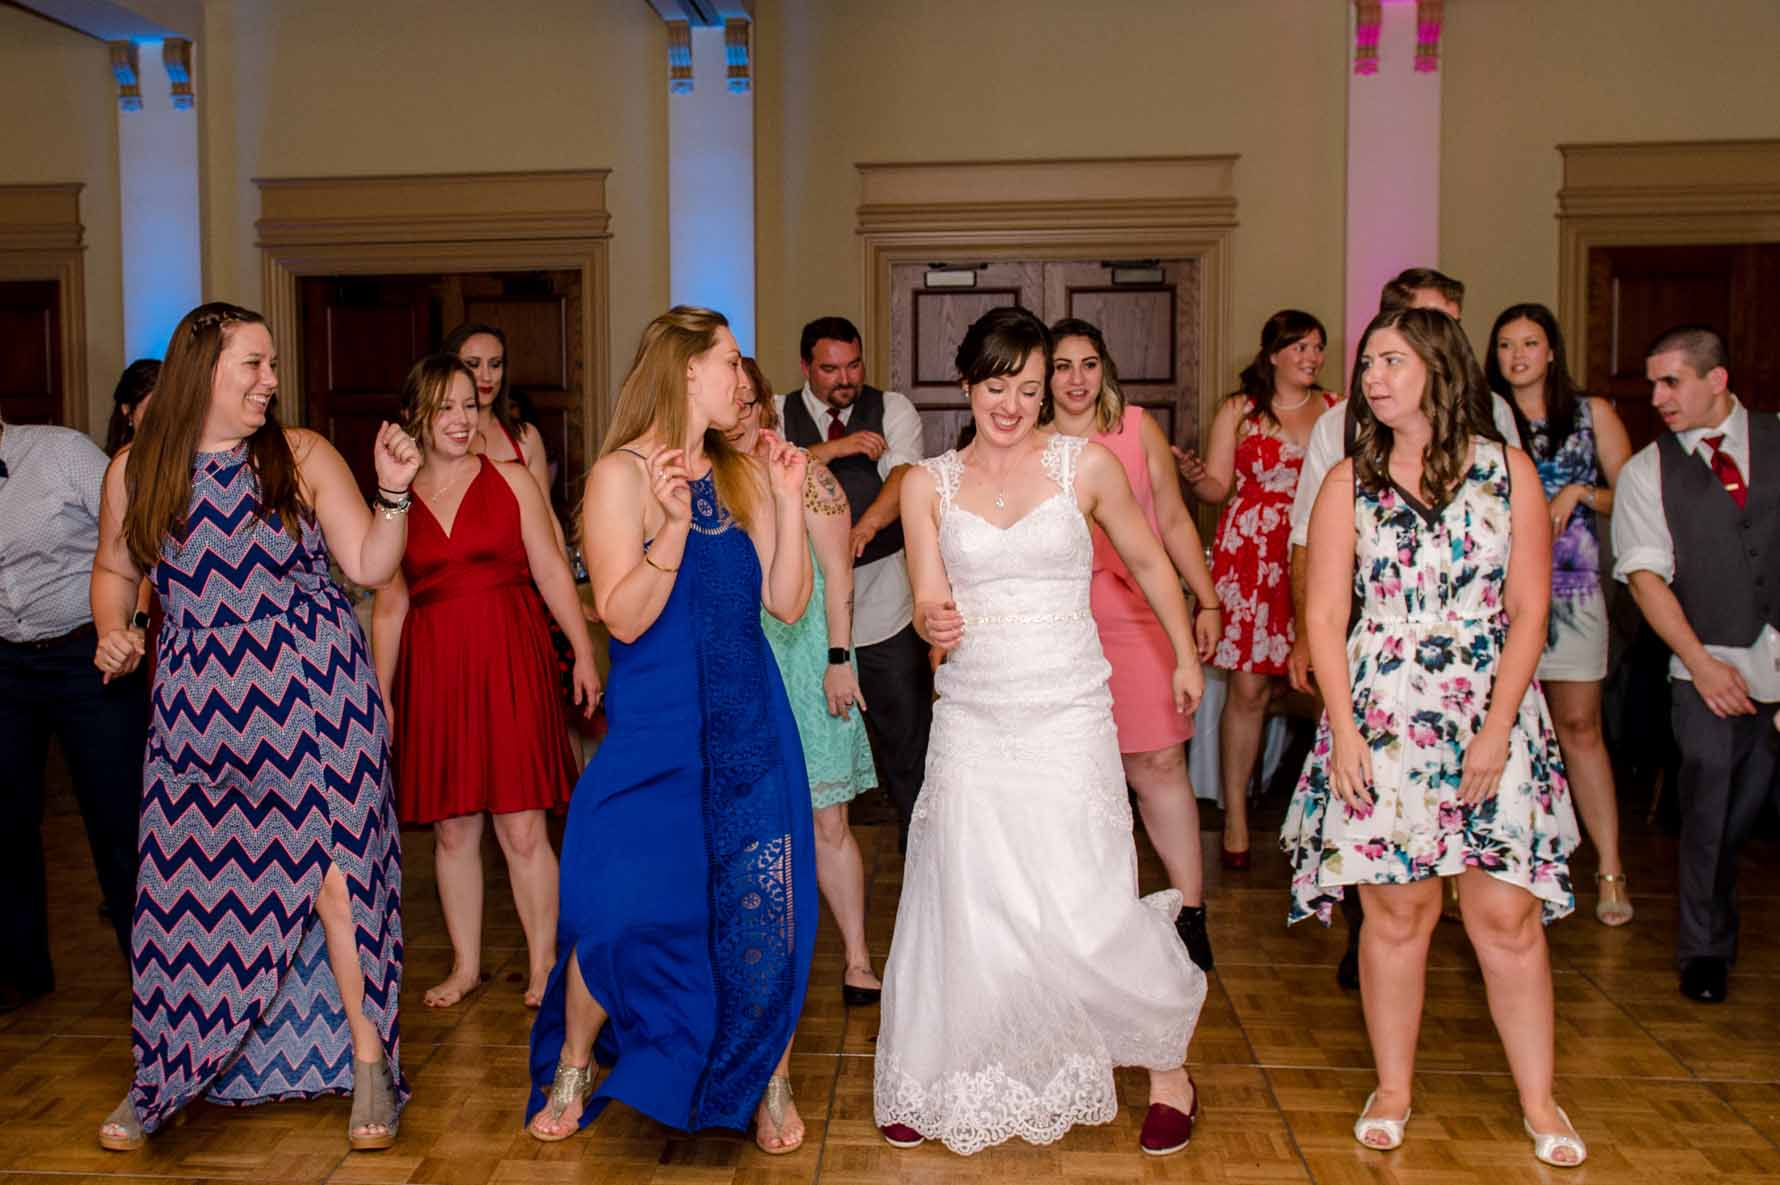 Wedding Reception Package $795 - - 4 Hours of dinner/dance music- Premium sound system with Subwoofer- Wireless microphone for toasts- Wedding planning workbook- Detailed planning meeting- 1 Custom Song Edit